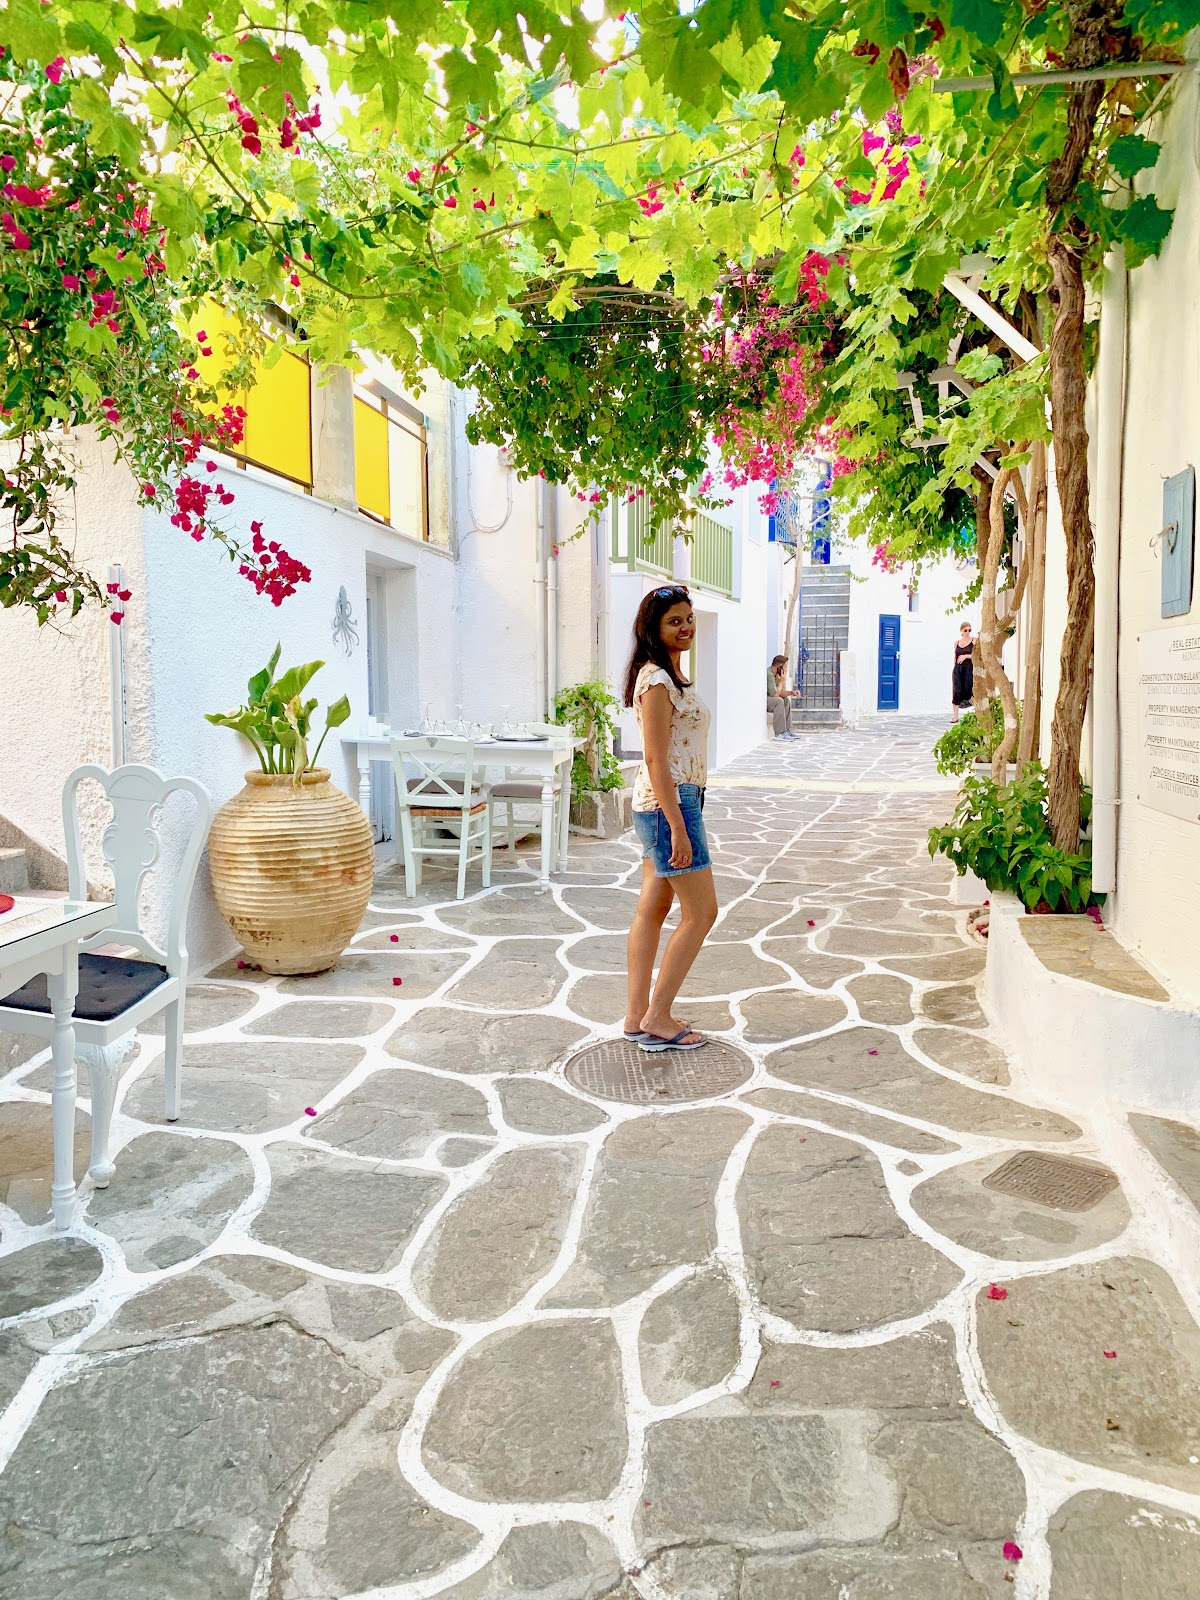 Naoussa Paros - things to do; 2 days in Paros